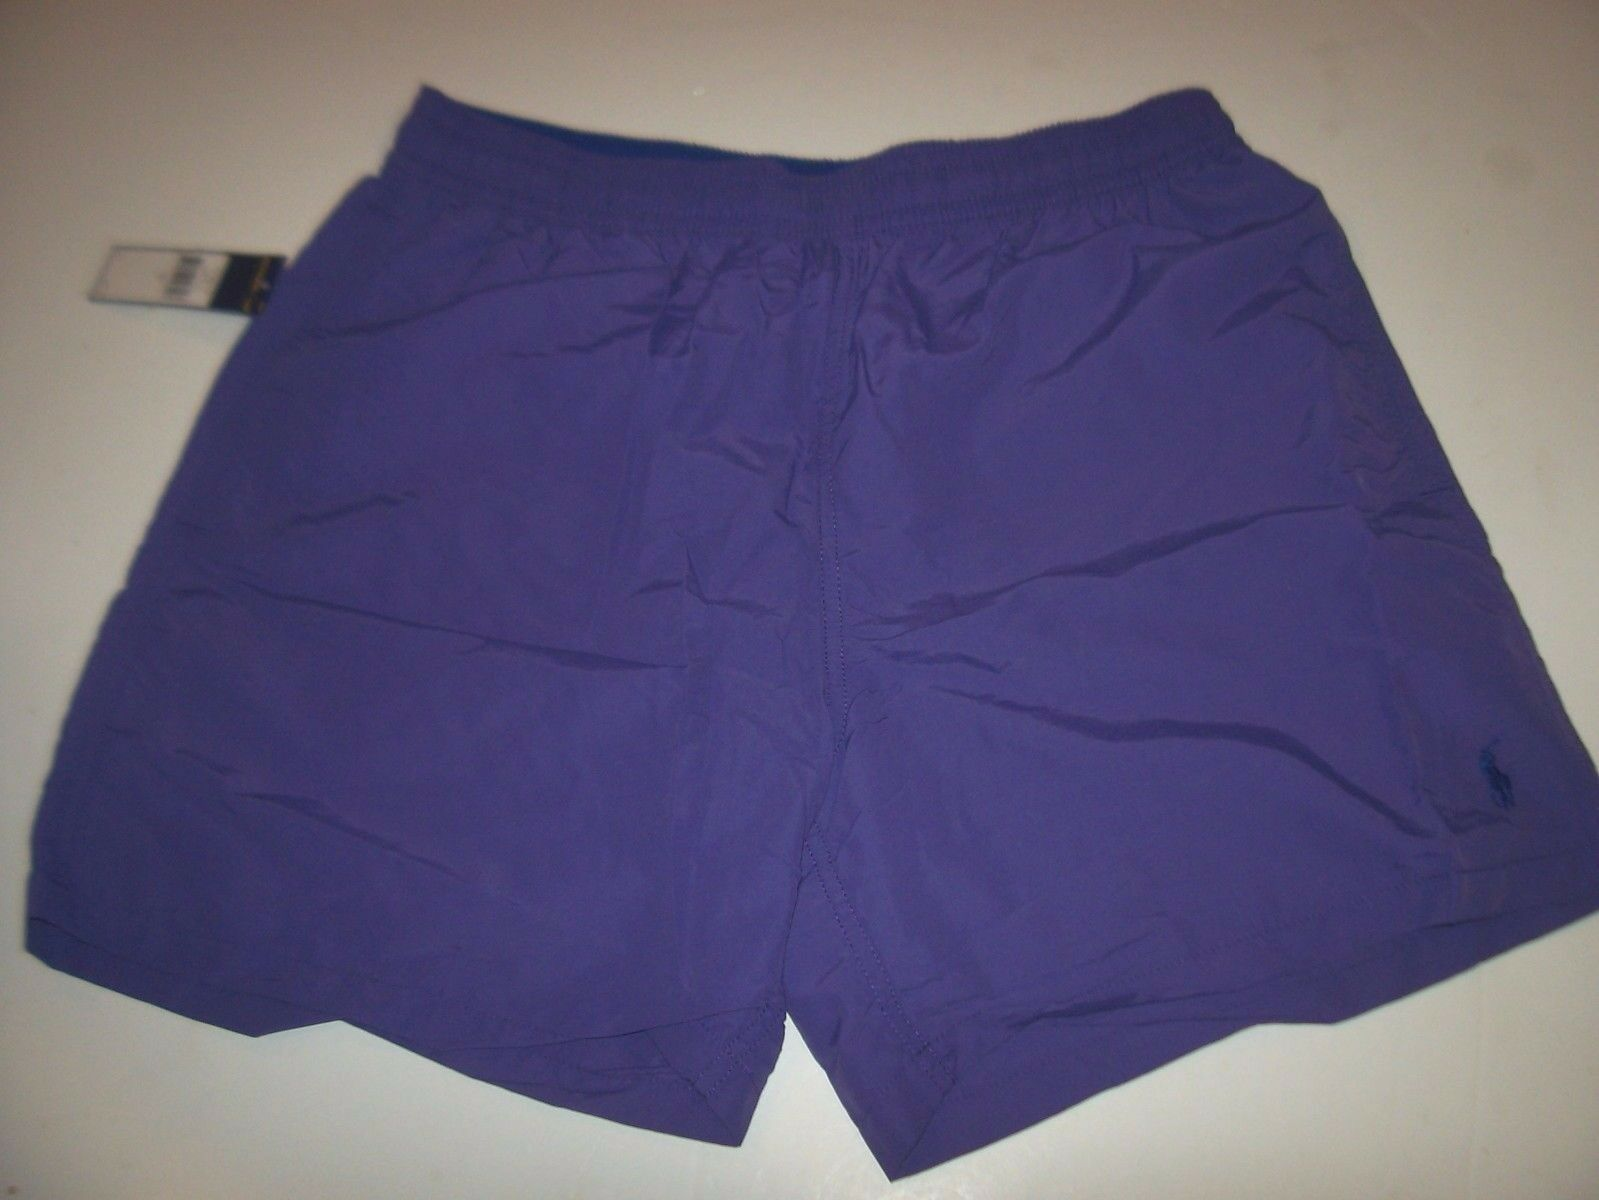 New Polo Ralph Lauren purple bluee logo swimsuit shorts swim trunks large or XL